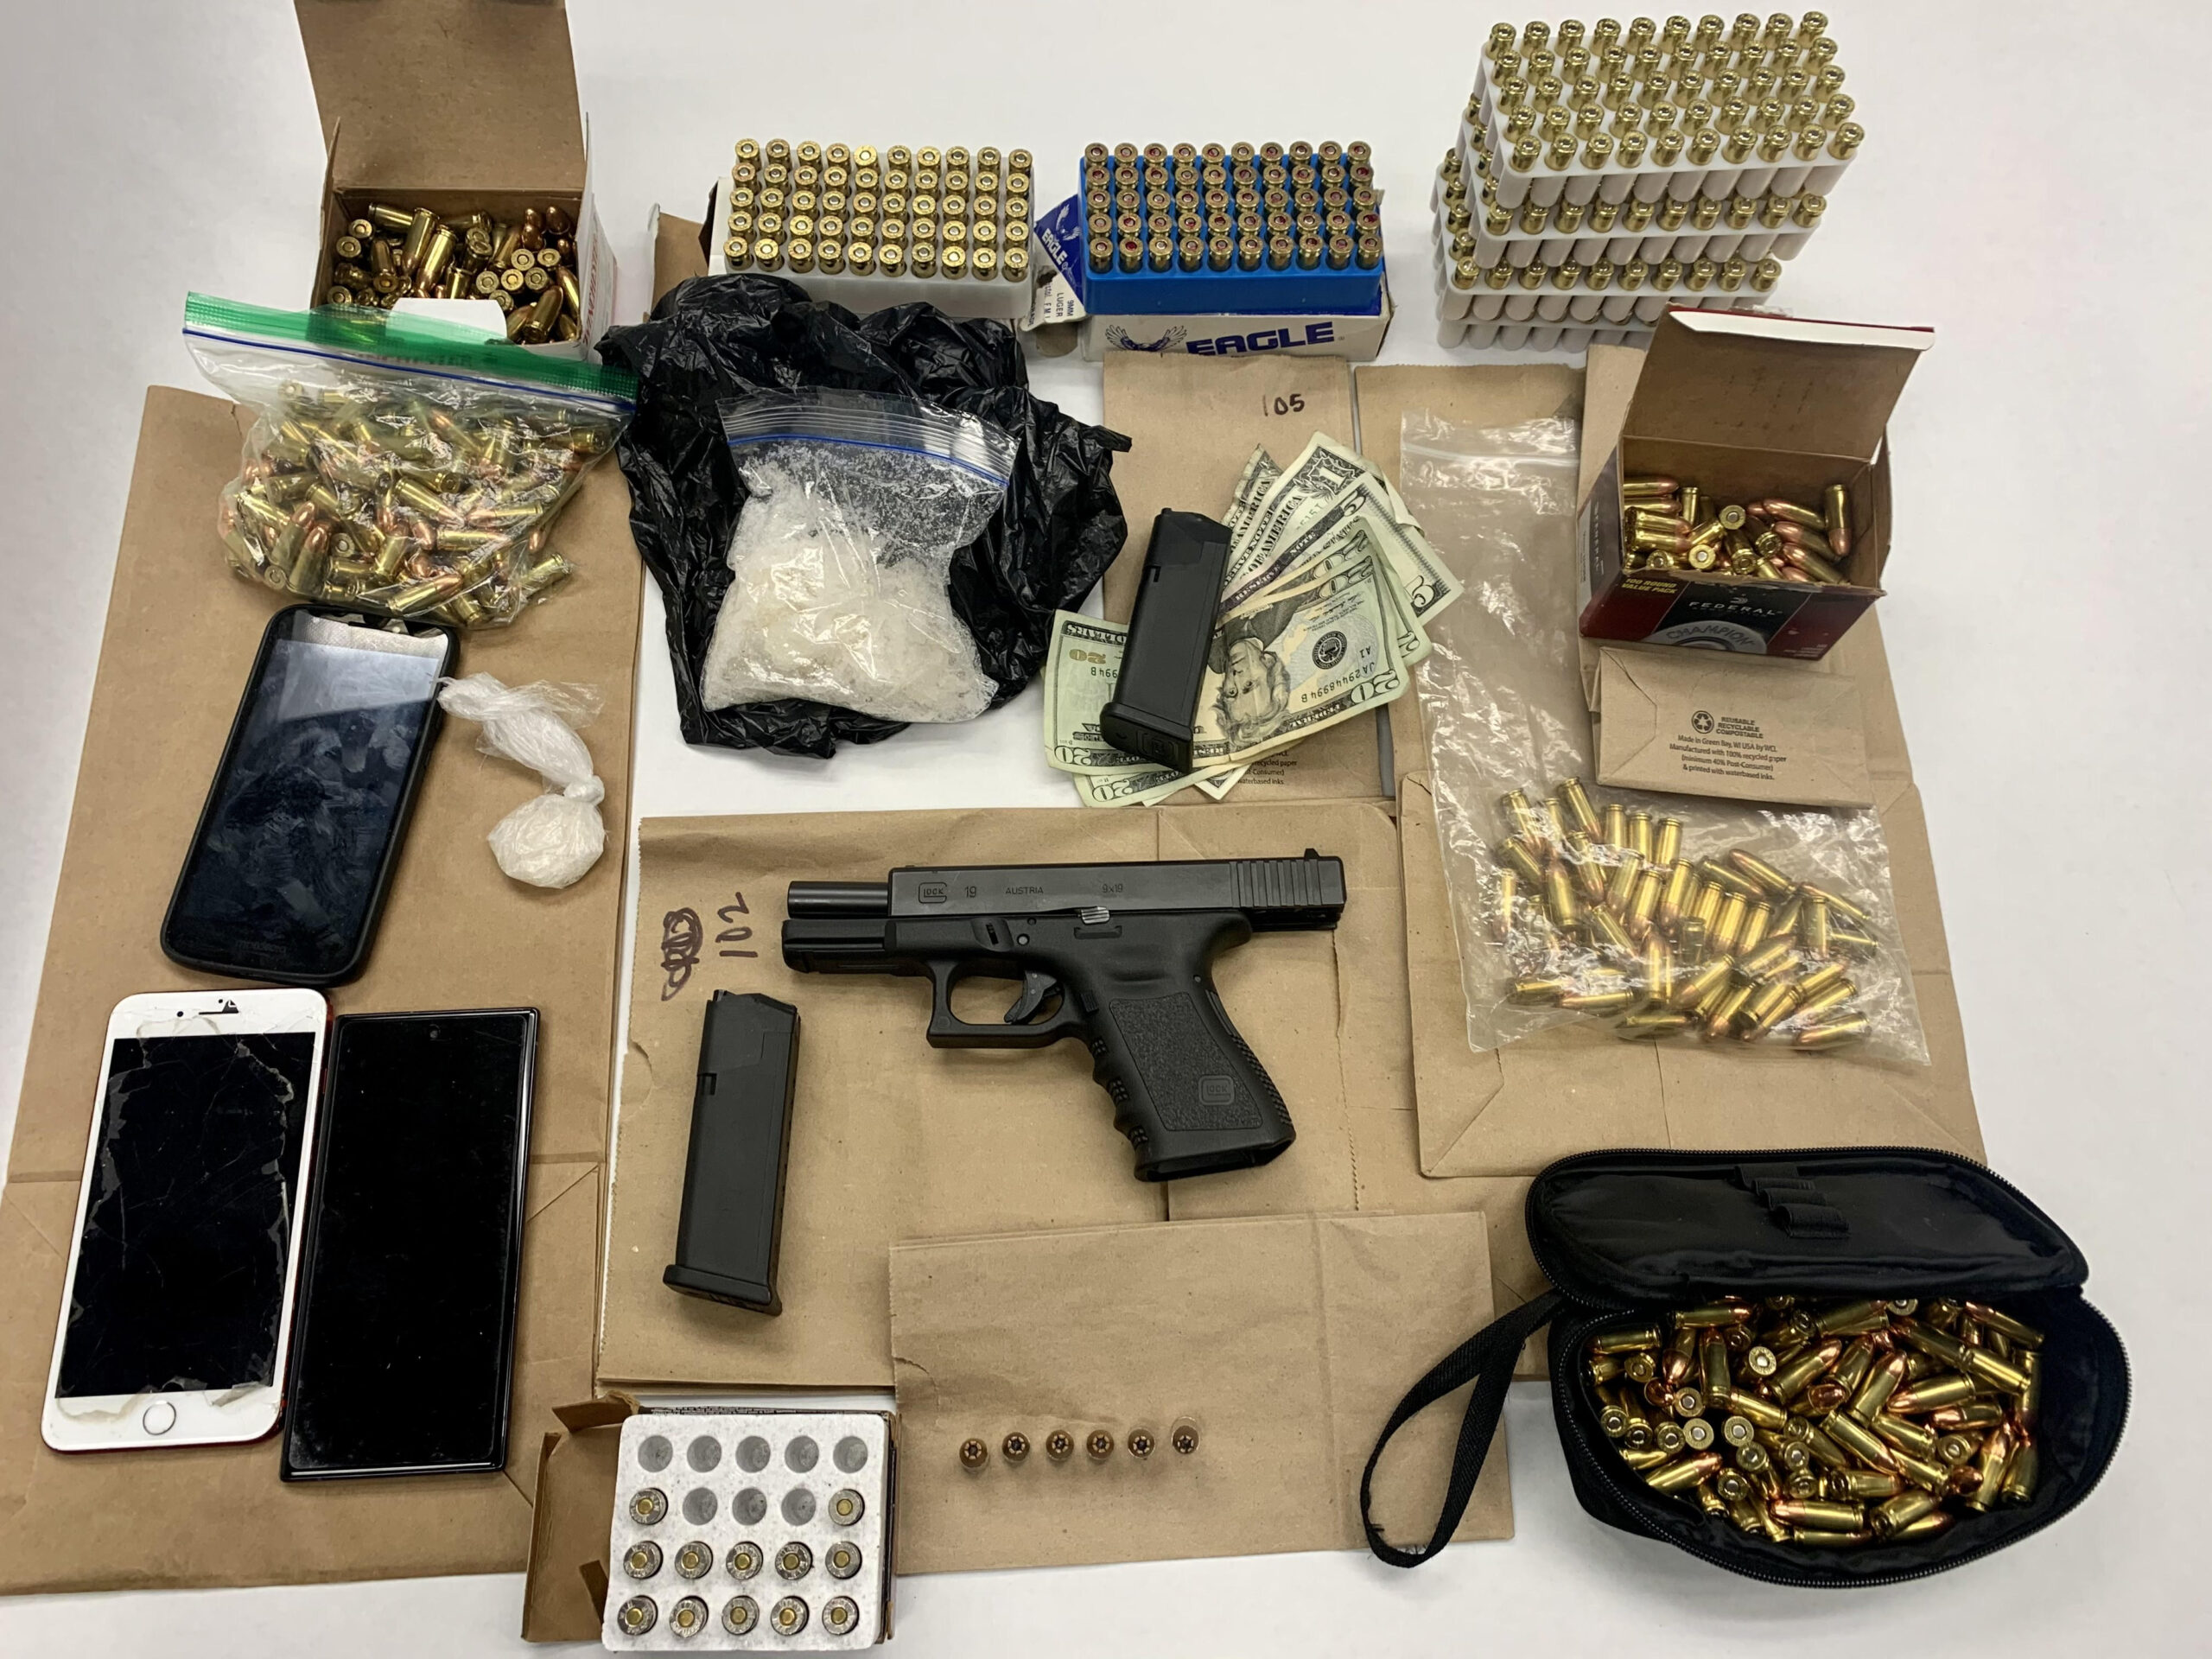 Weapon and ammo seized by police